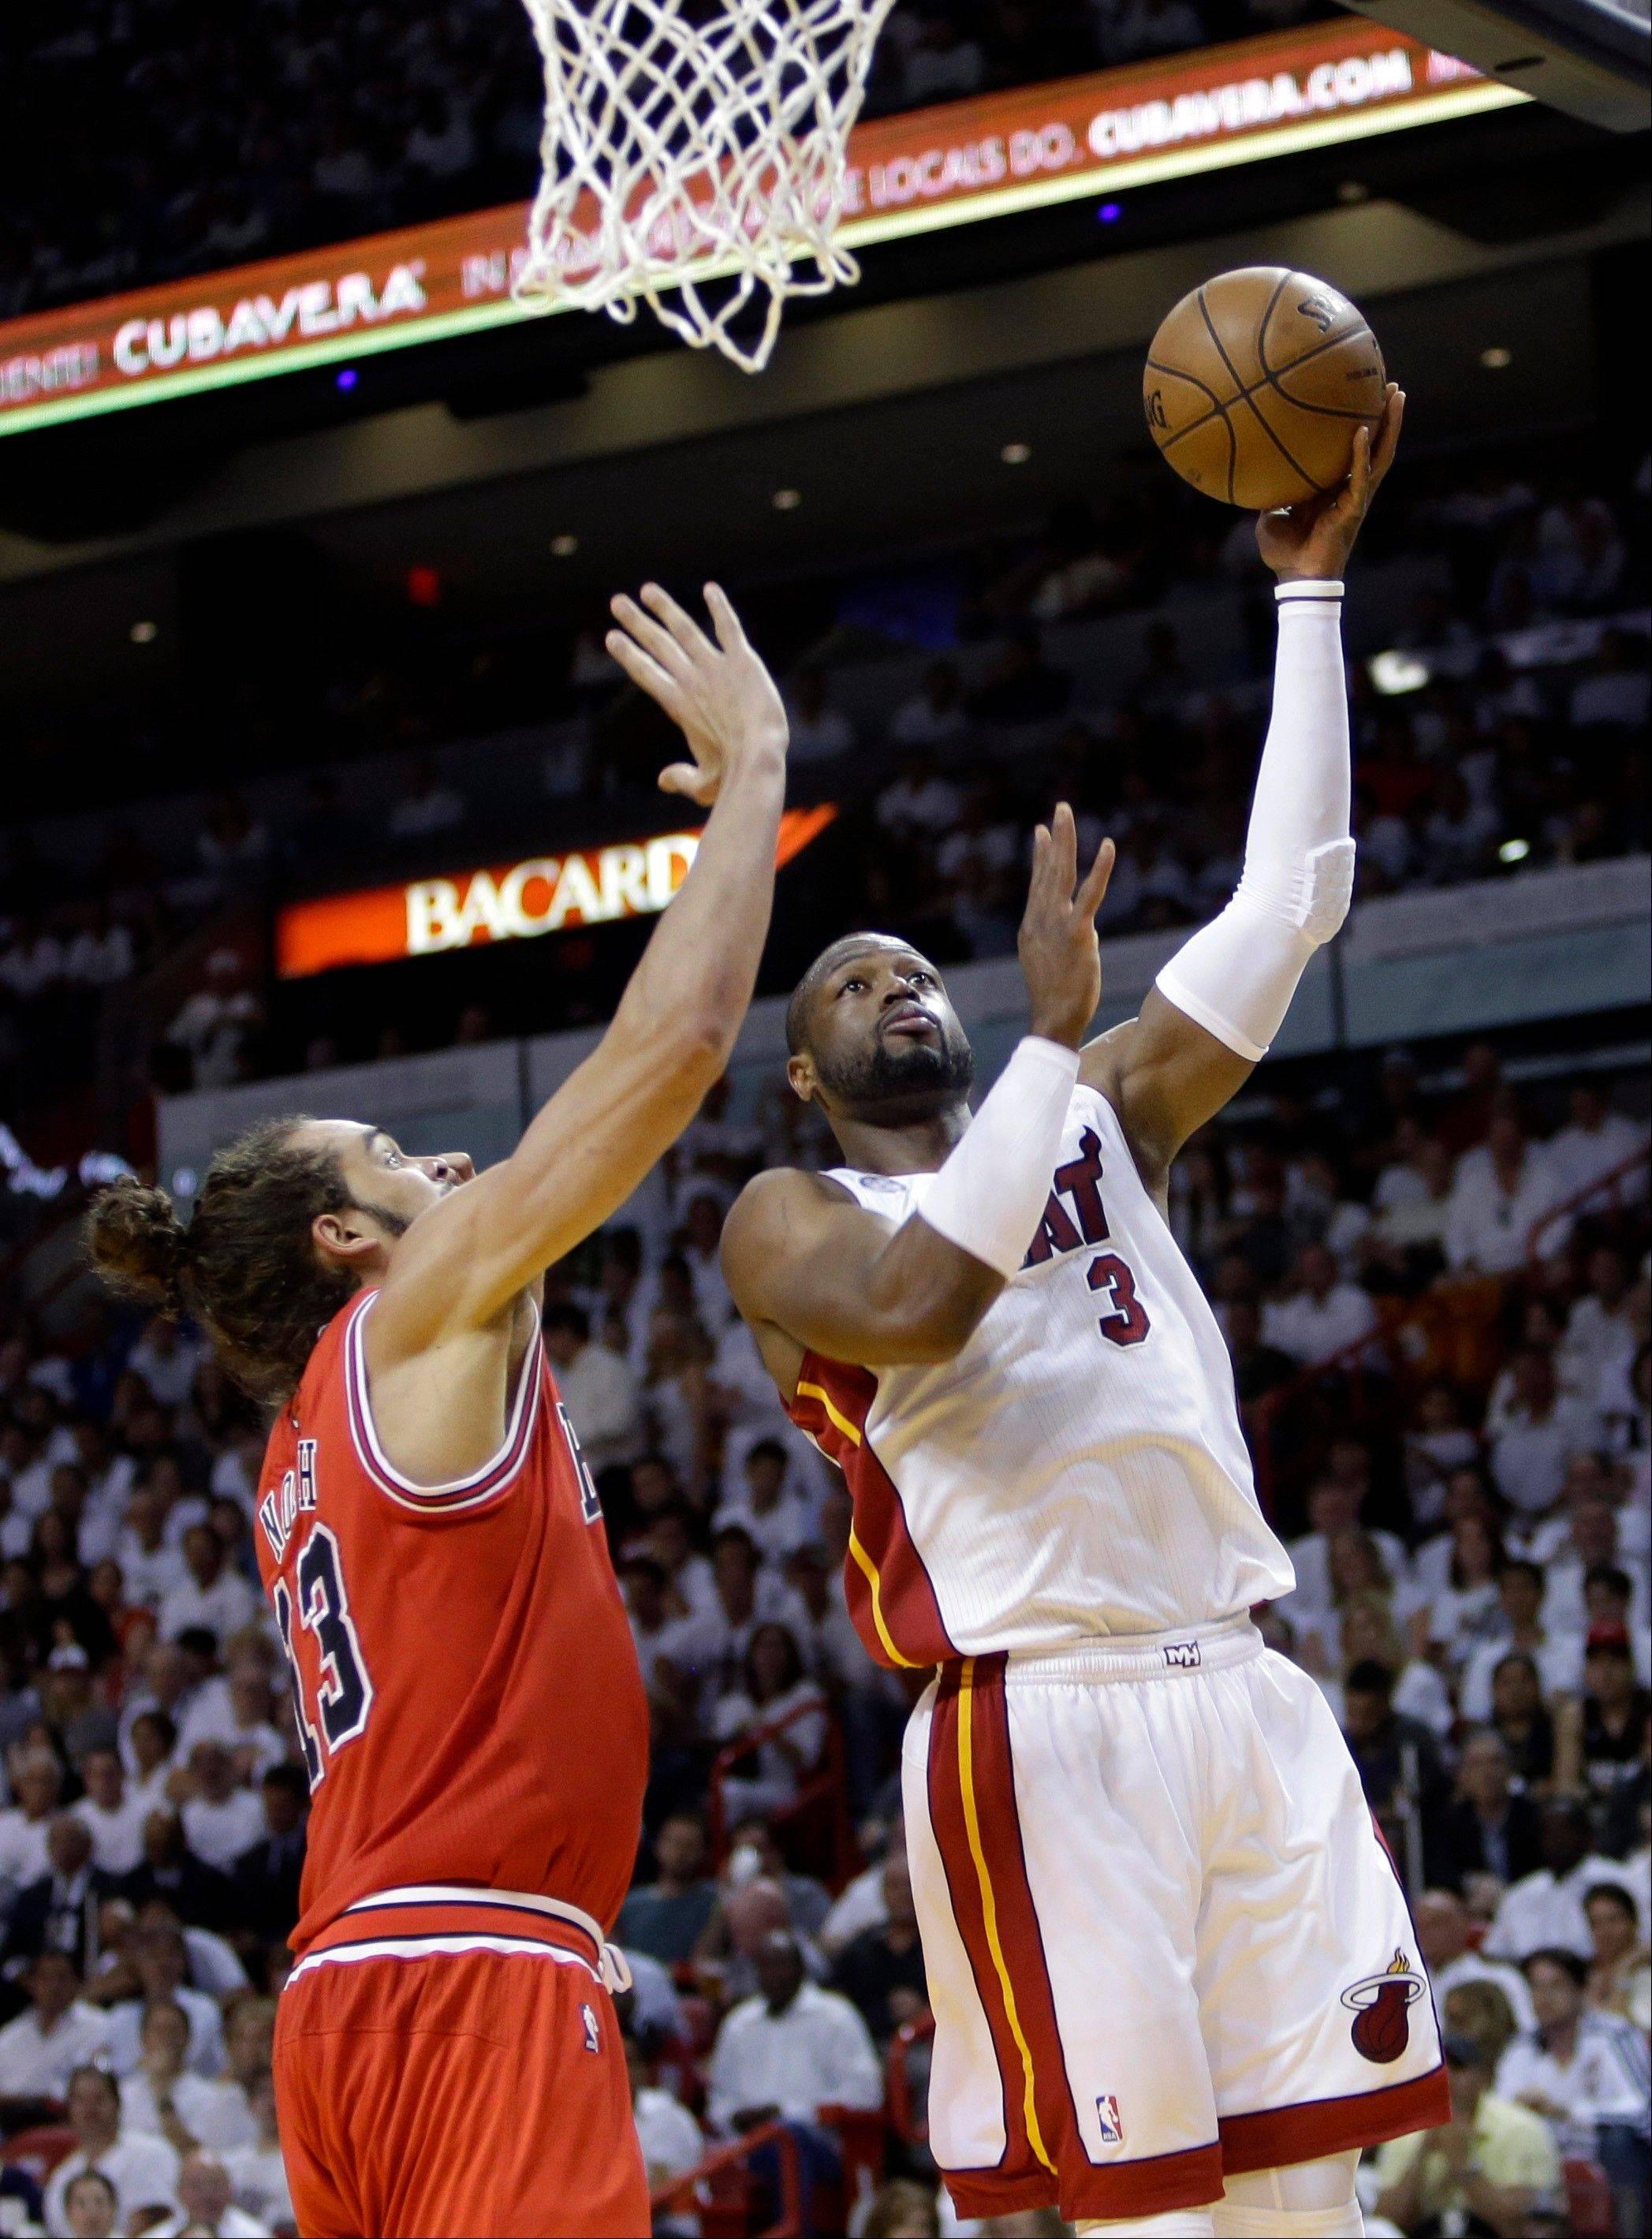 Miami Heat guard Dwyane Wade (3) shoots against Chicago Bulls center Joakim Noah during the first half of Game 1 of the NBA basketball playoff series in the Eastern Conference semifinals, Monday, May 6, 2013 in Miami.